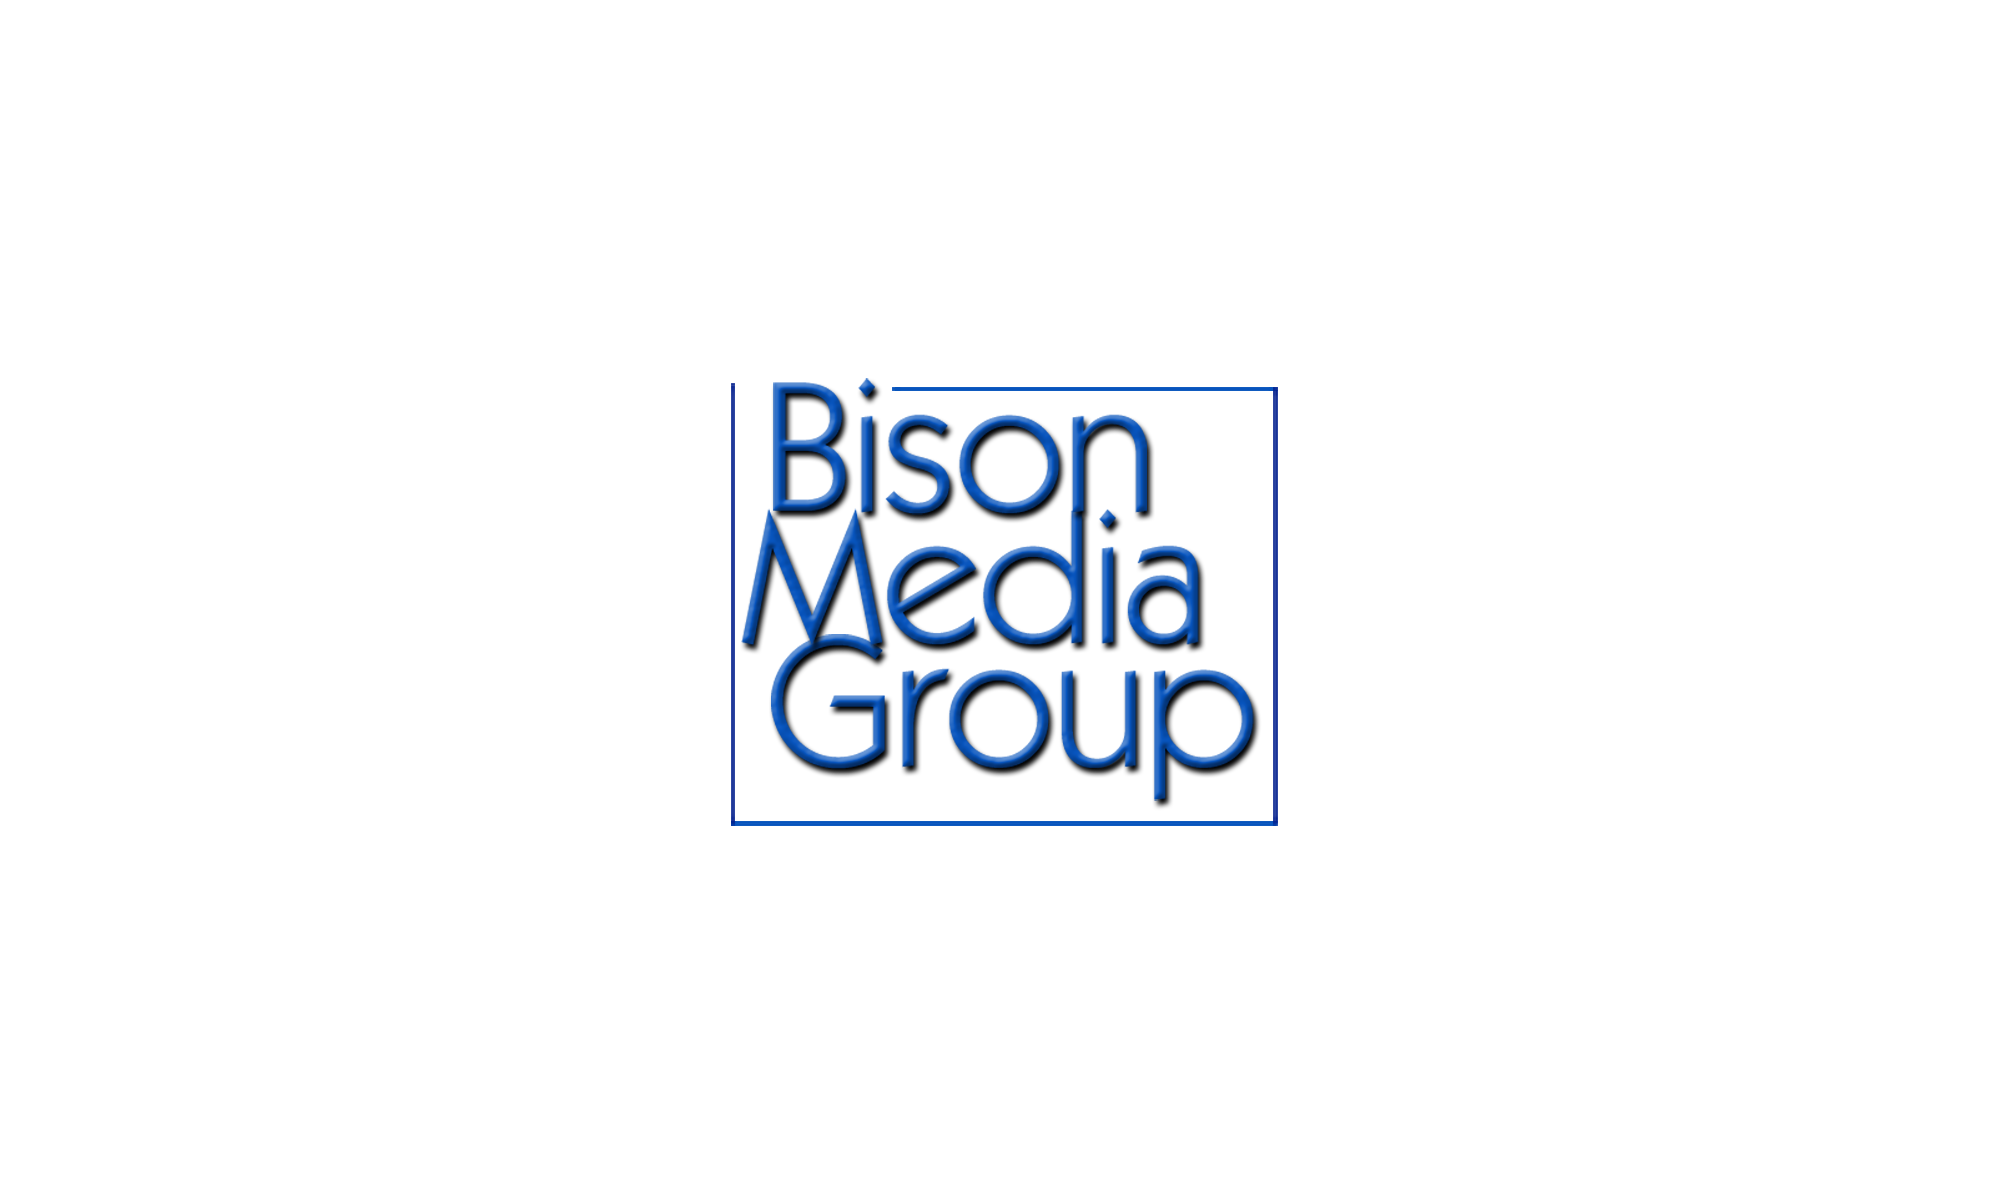 Bison Media Group Digital Marketing Agency